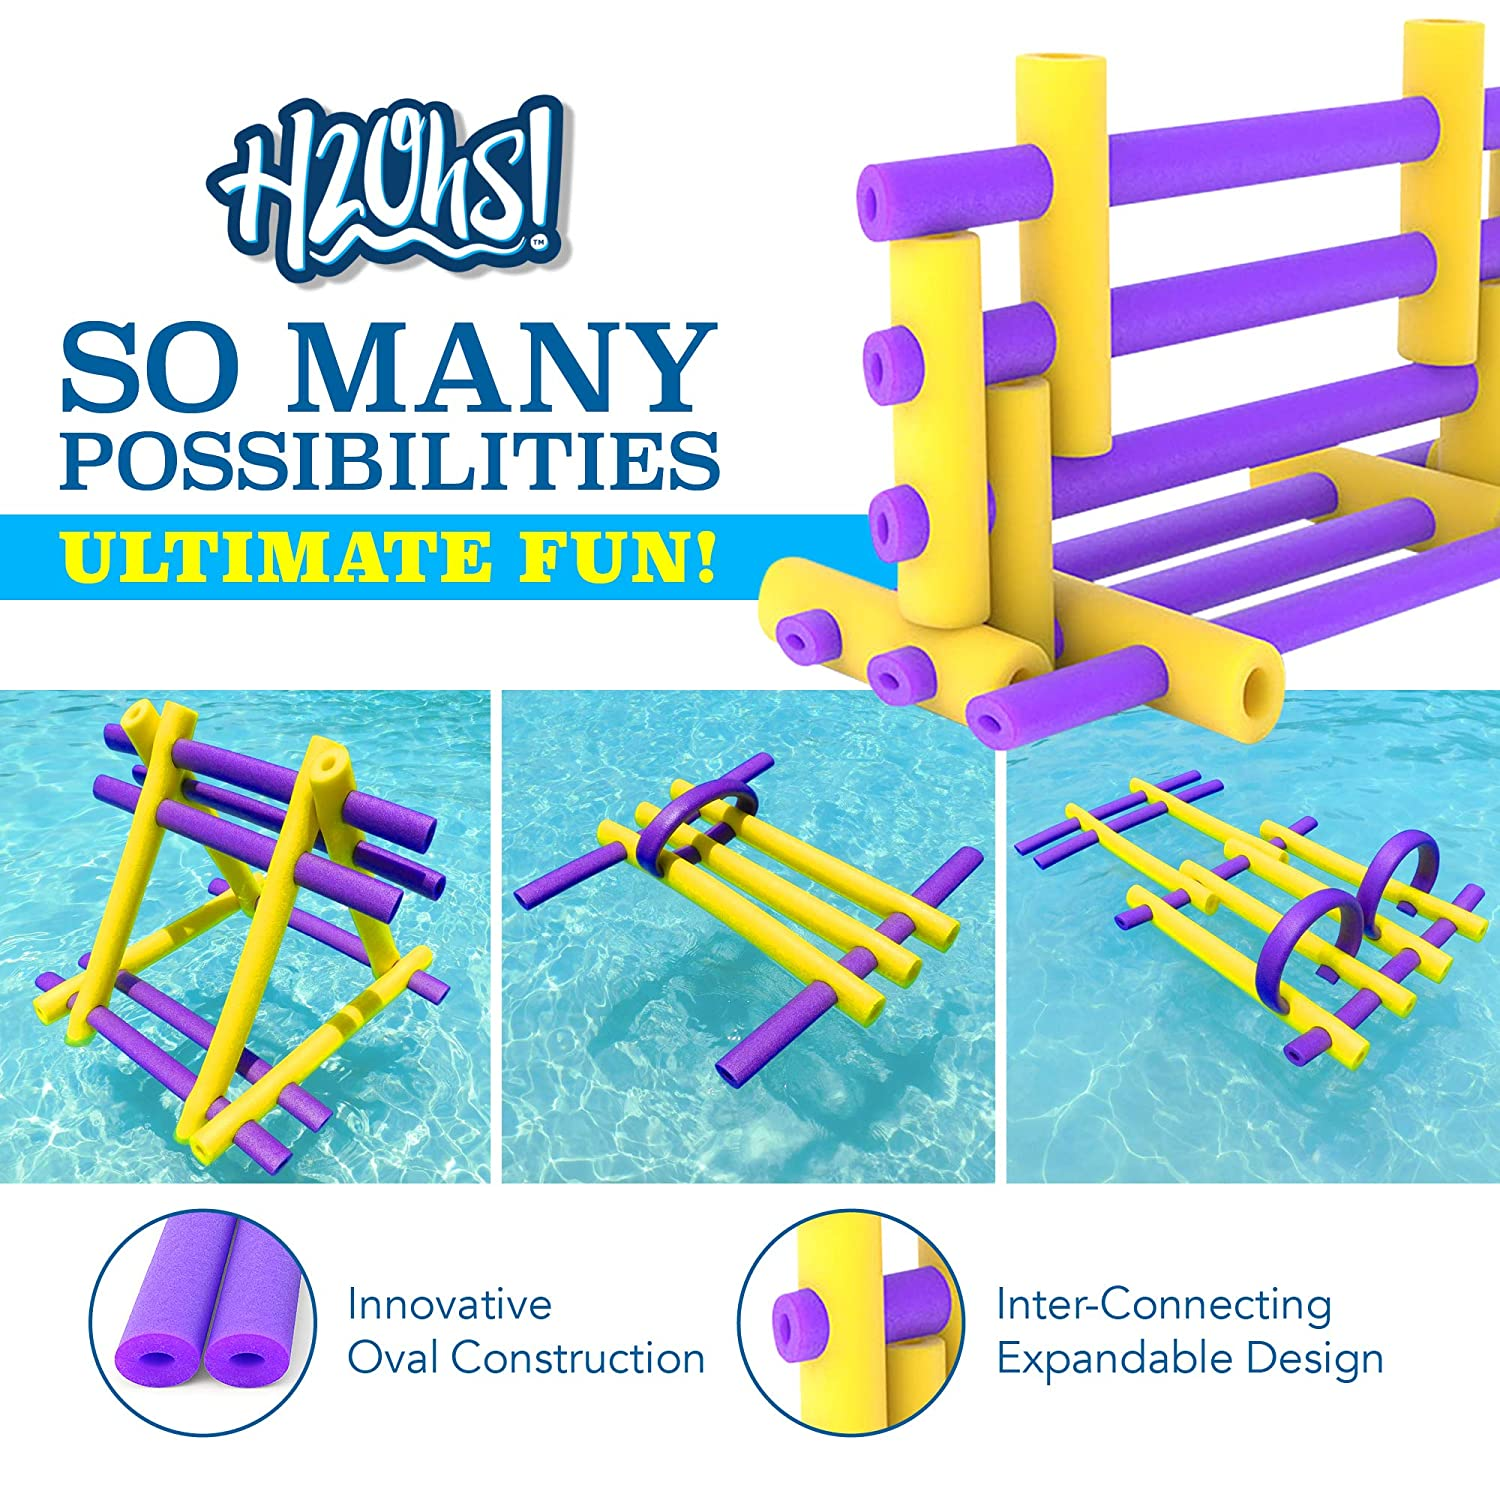 Build and Connect 8 Pack Swimming Toy Kit Mini-H2Ohs Foam Pool Noodles H2Ohs Create Your Own Floating Raft or Watercraft Instructions Included Connex Water Float Kit